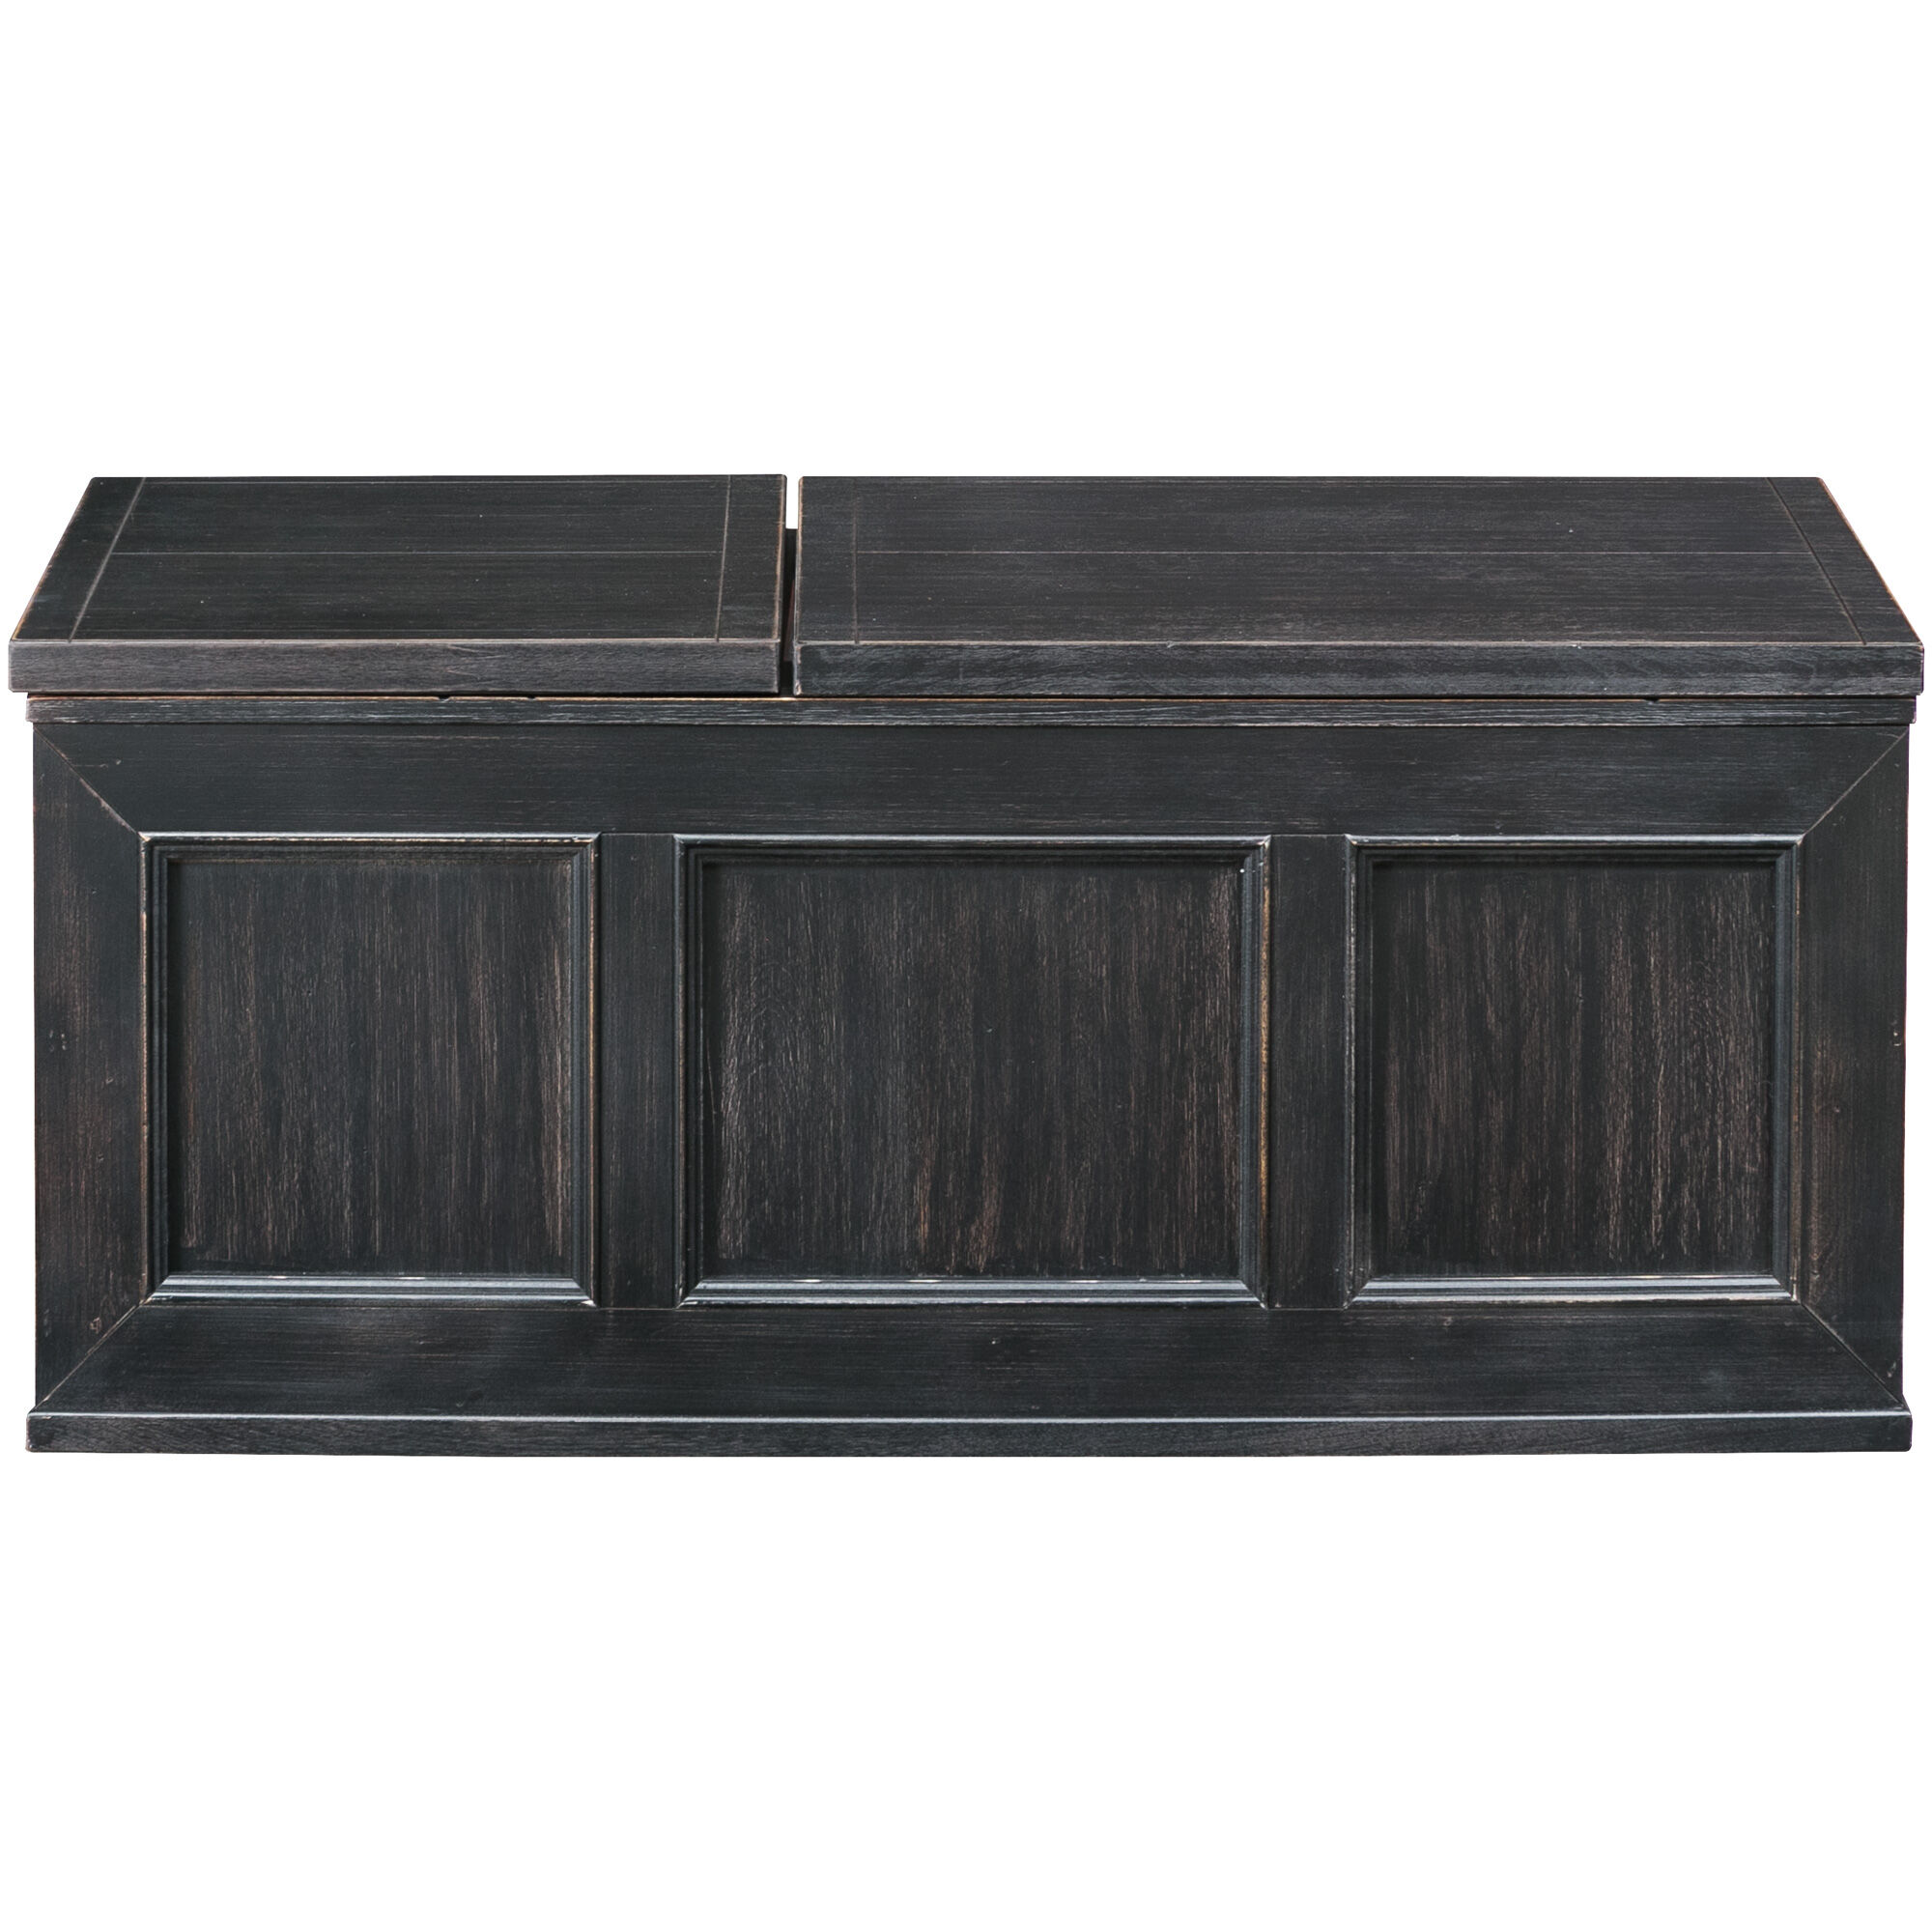 ... Gavelston Black Lift Top Coffee Table ...